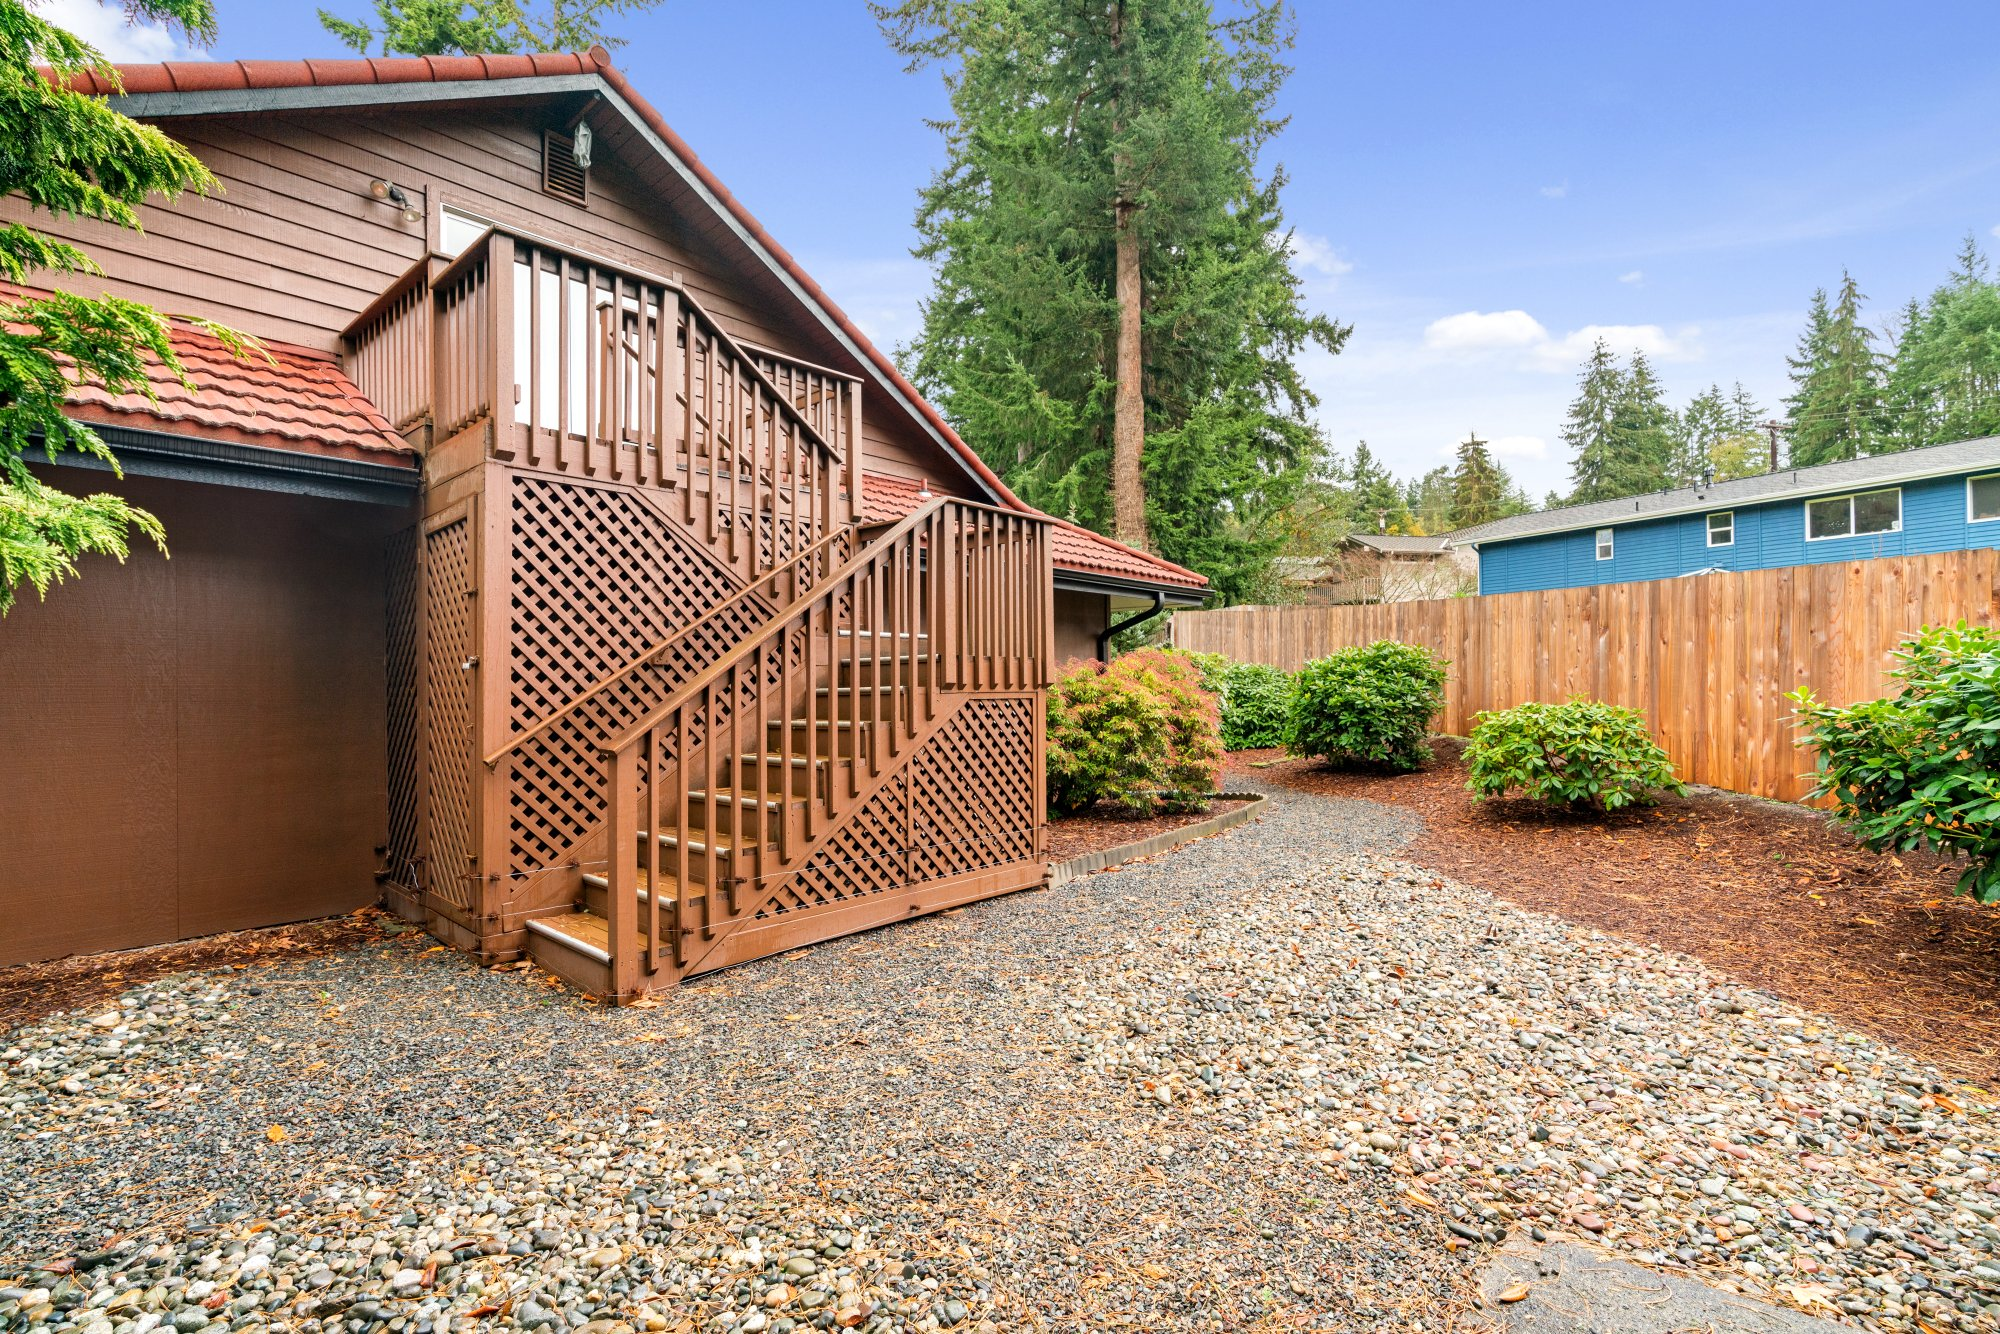 Terry Vehrs_028-22829108thAvenueWest-Edmonds-WA-98020-SMALL